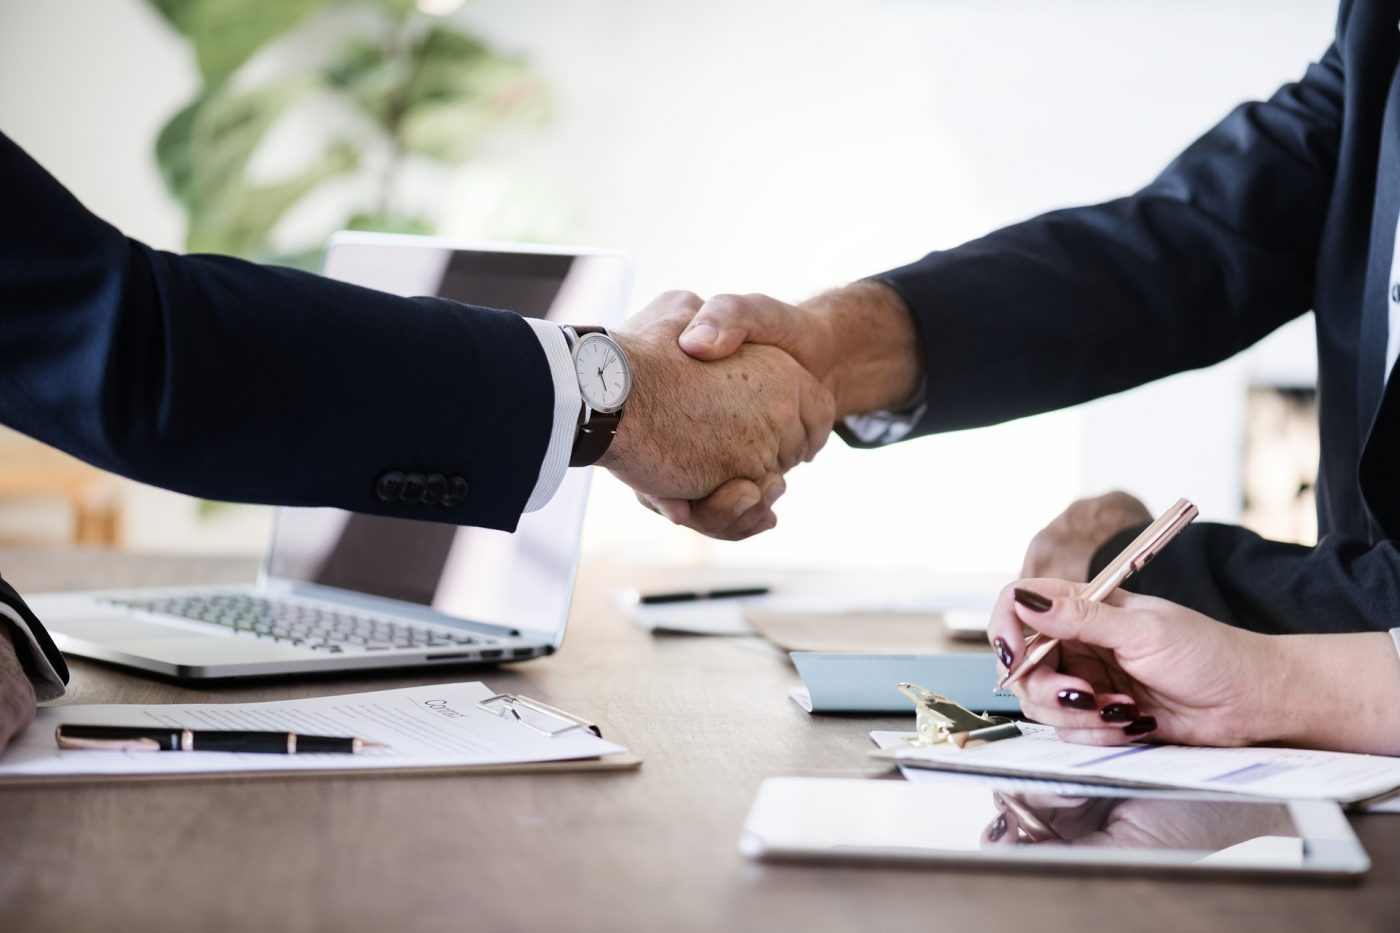 Starting a business partnership